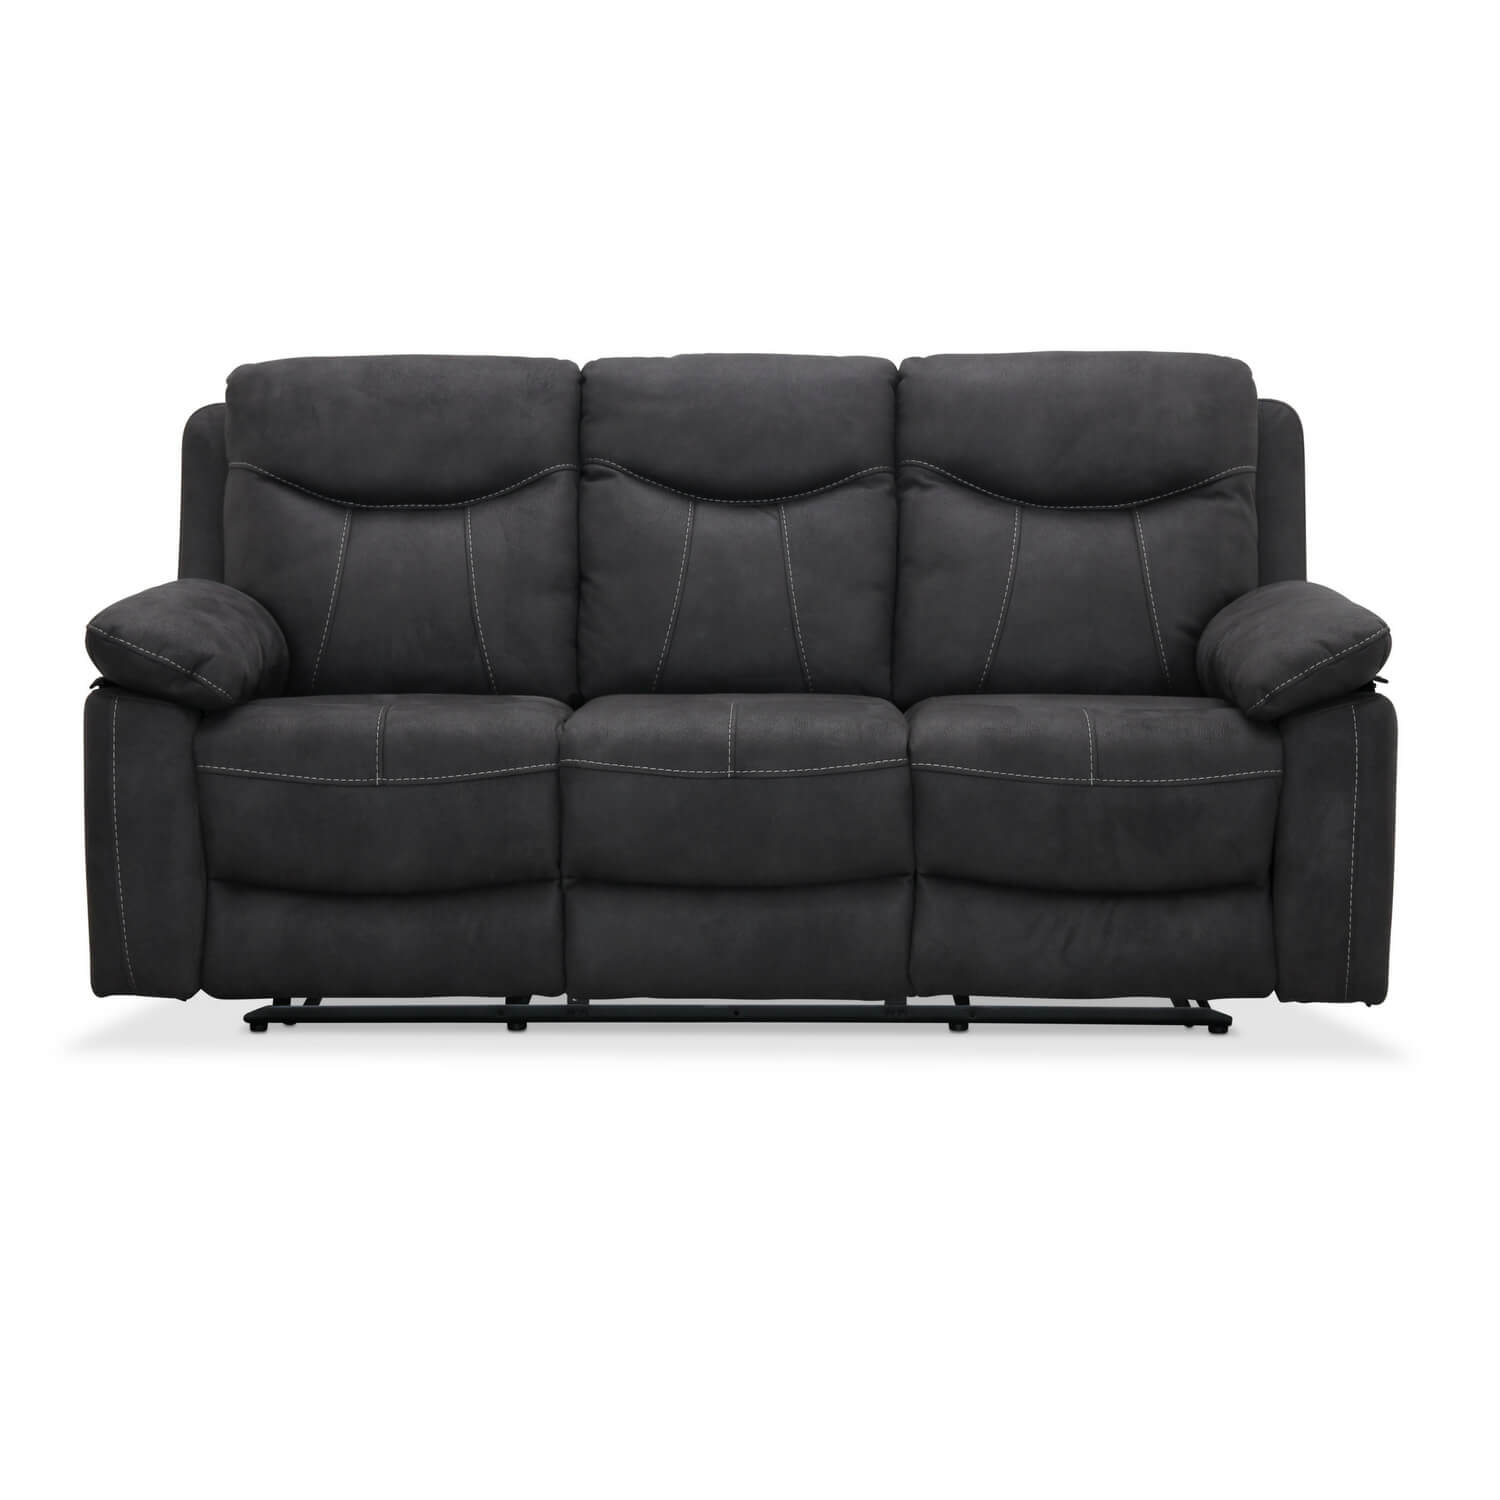 Image of   Boston recliner 3 personers Biograf sofa, grå stof